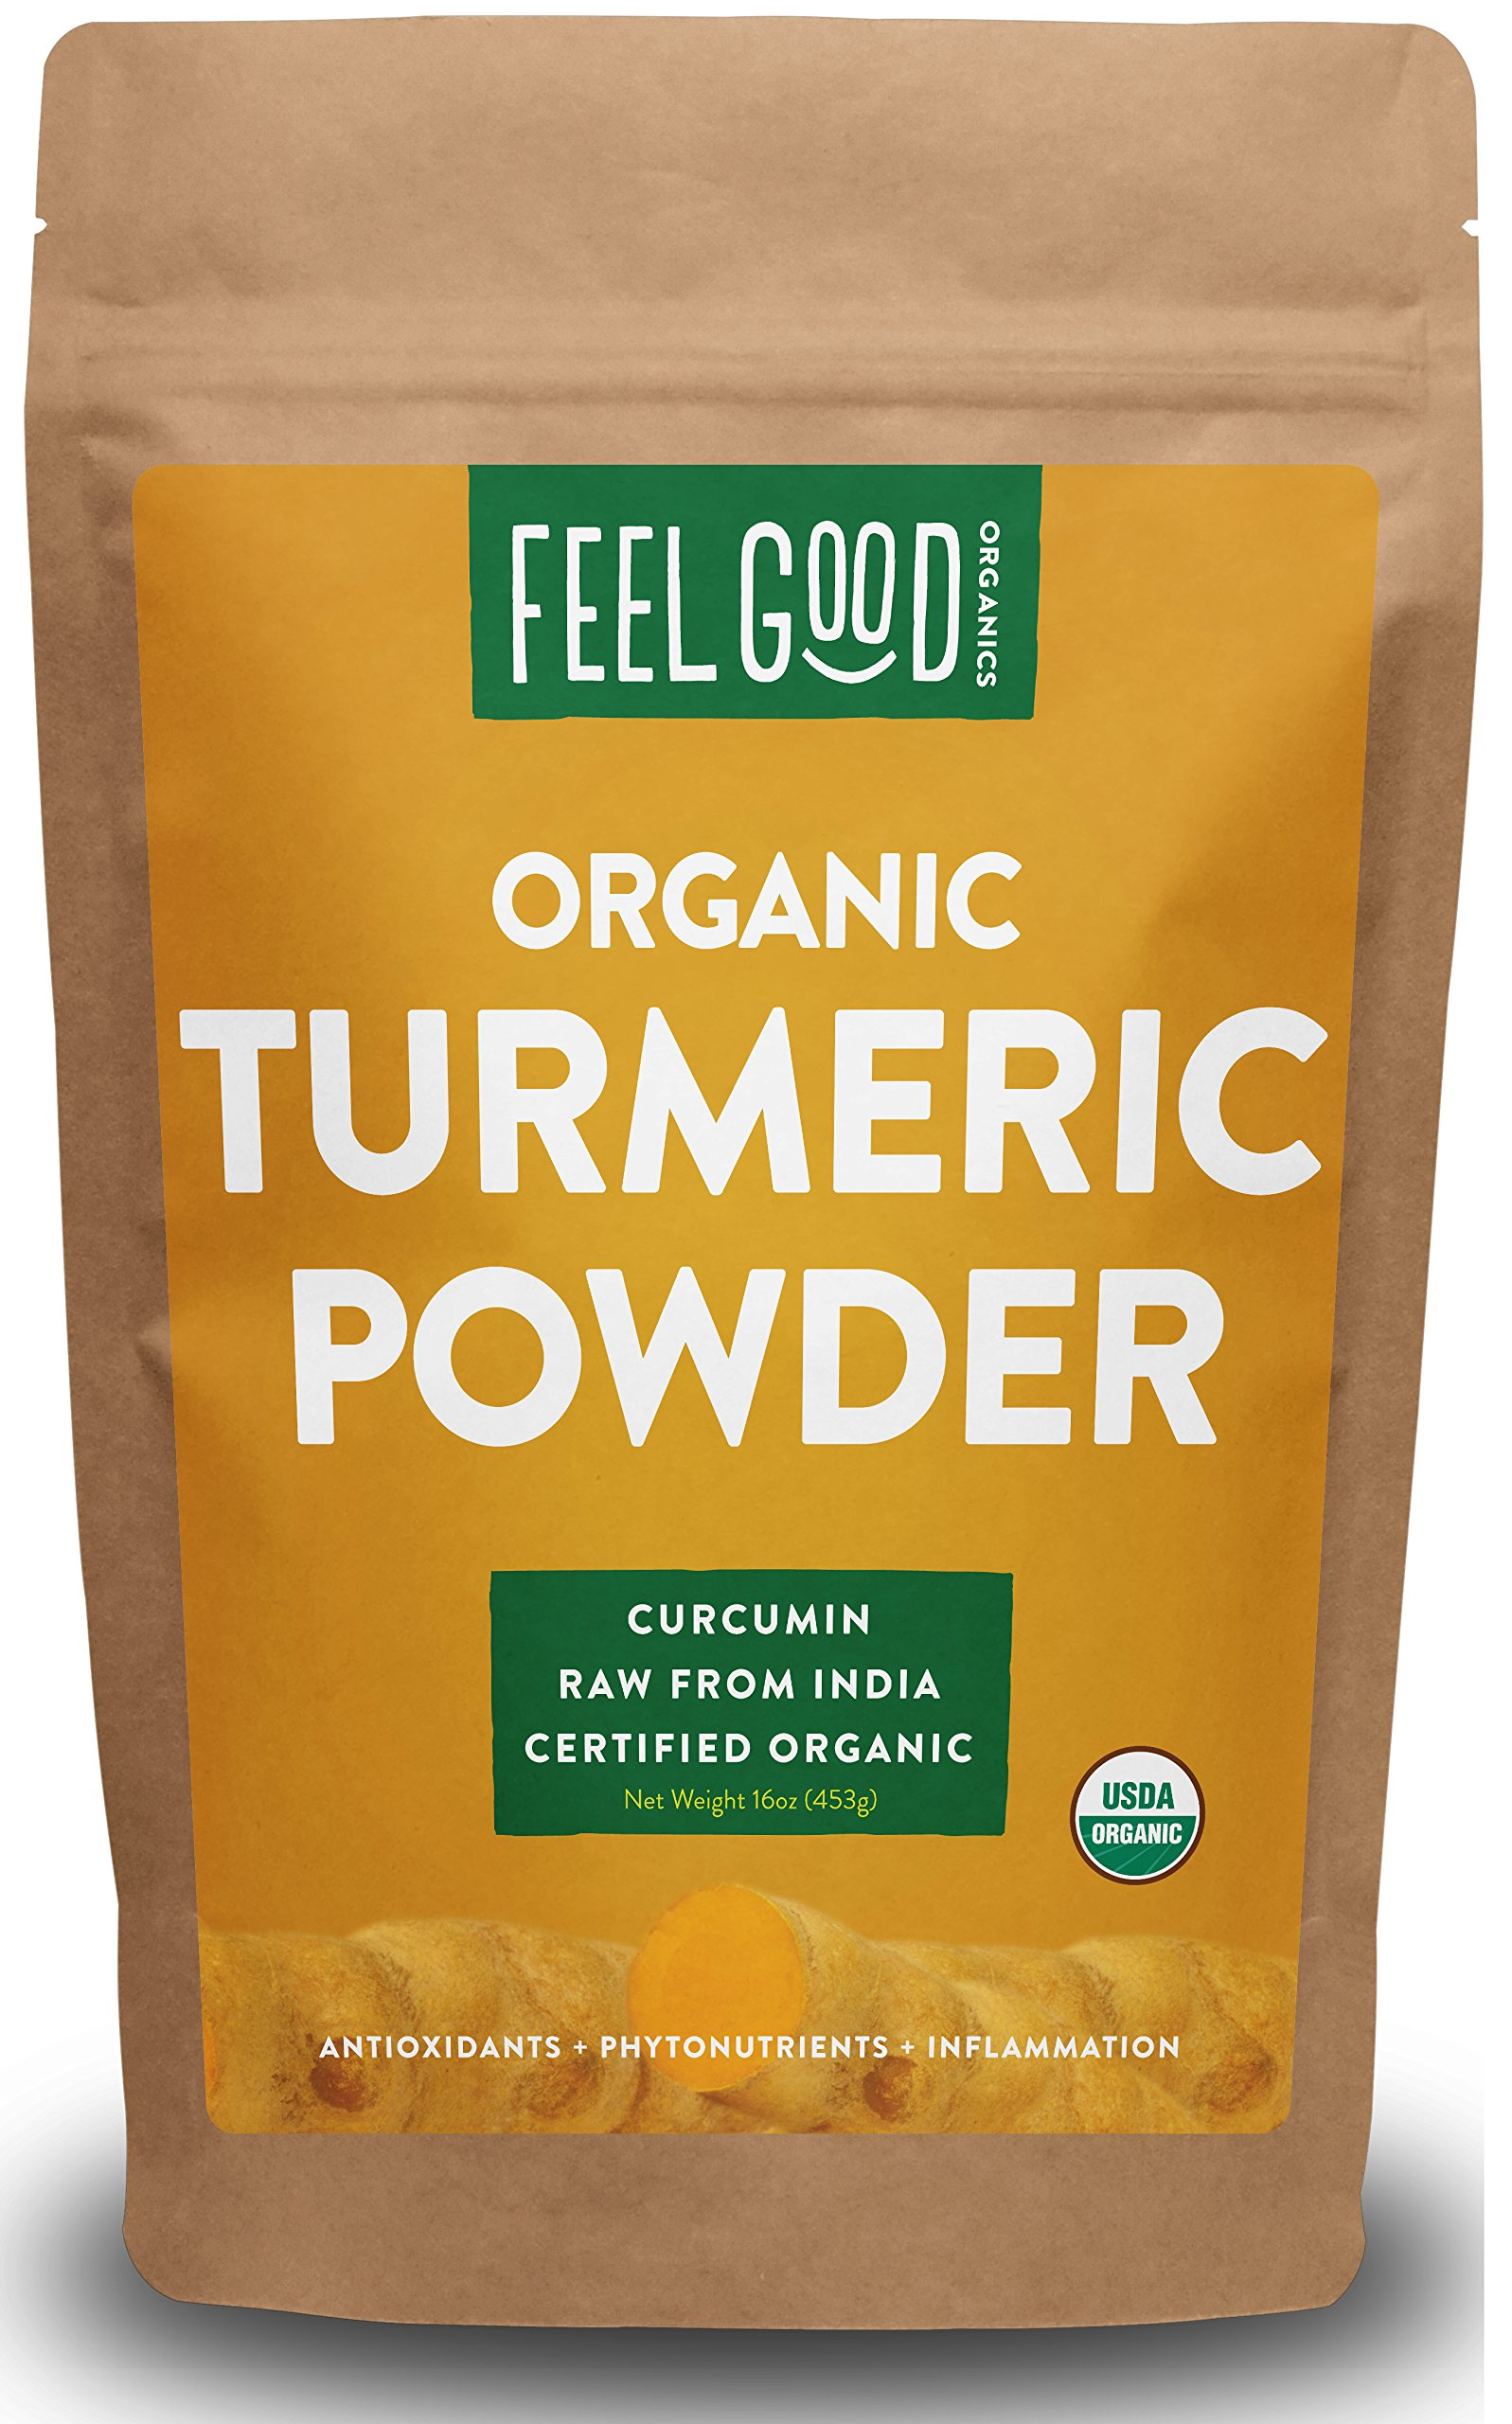 Organic Turmeric Powder - 16oz Resealable Bag (1lb) - 100% Raw w/Curcumin From India - by Feel Good Organics